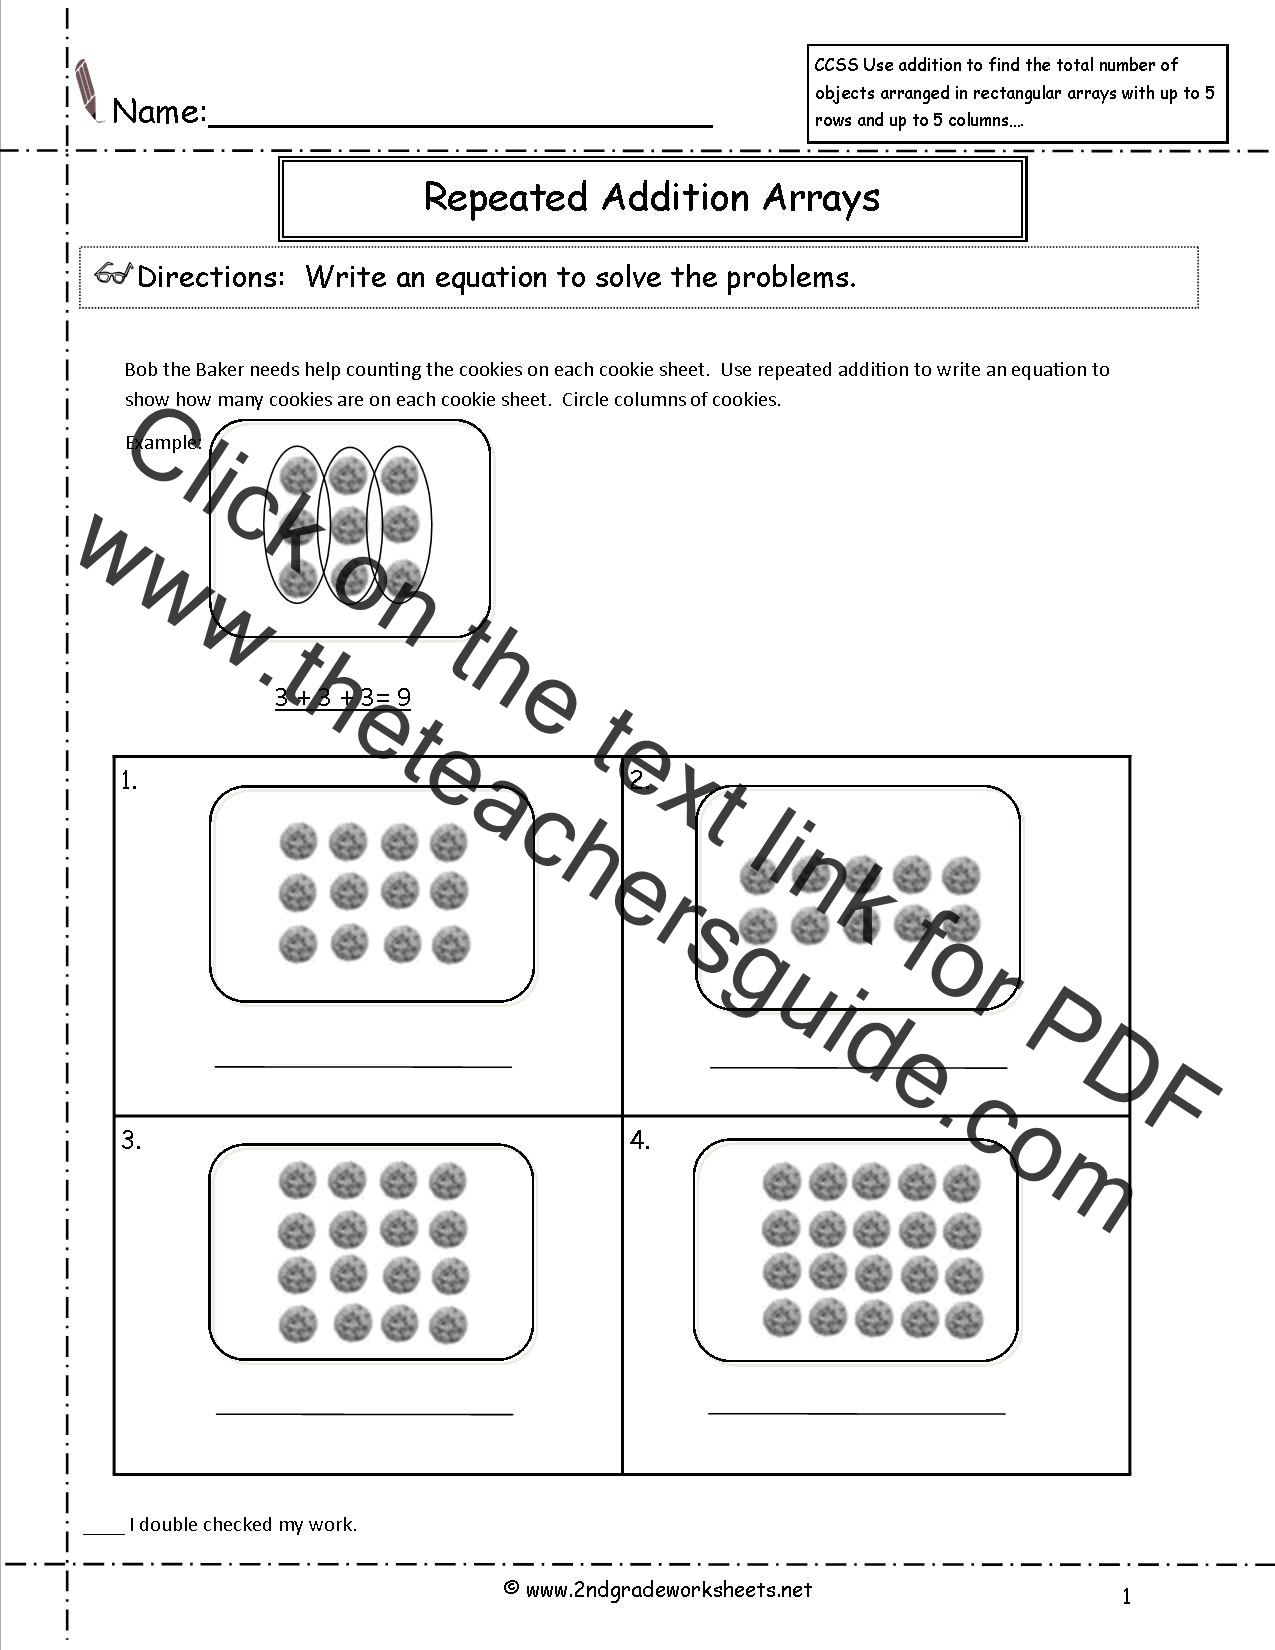 Worksheet Second Grade Common Core Math Worksheets 2nd grade math common core state standards worksheets ccss 2 oa 4 worksheets